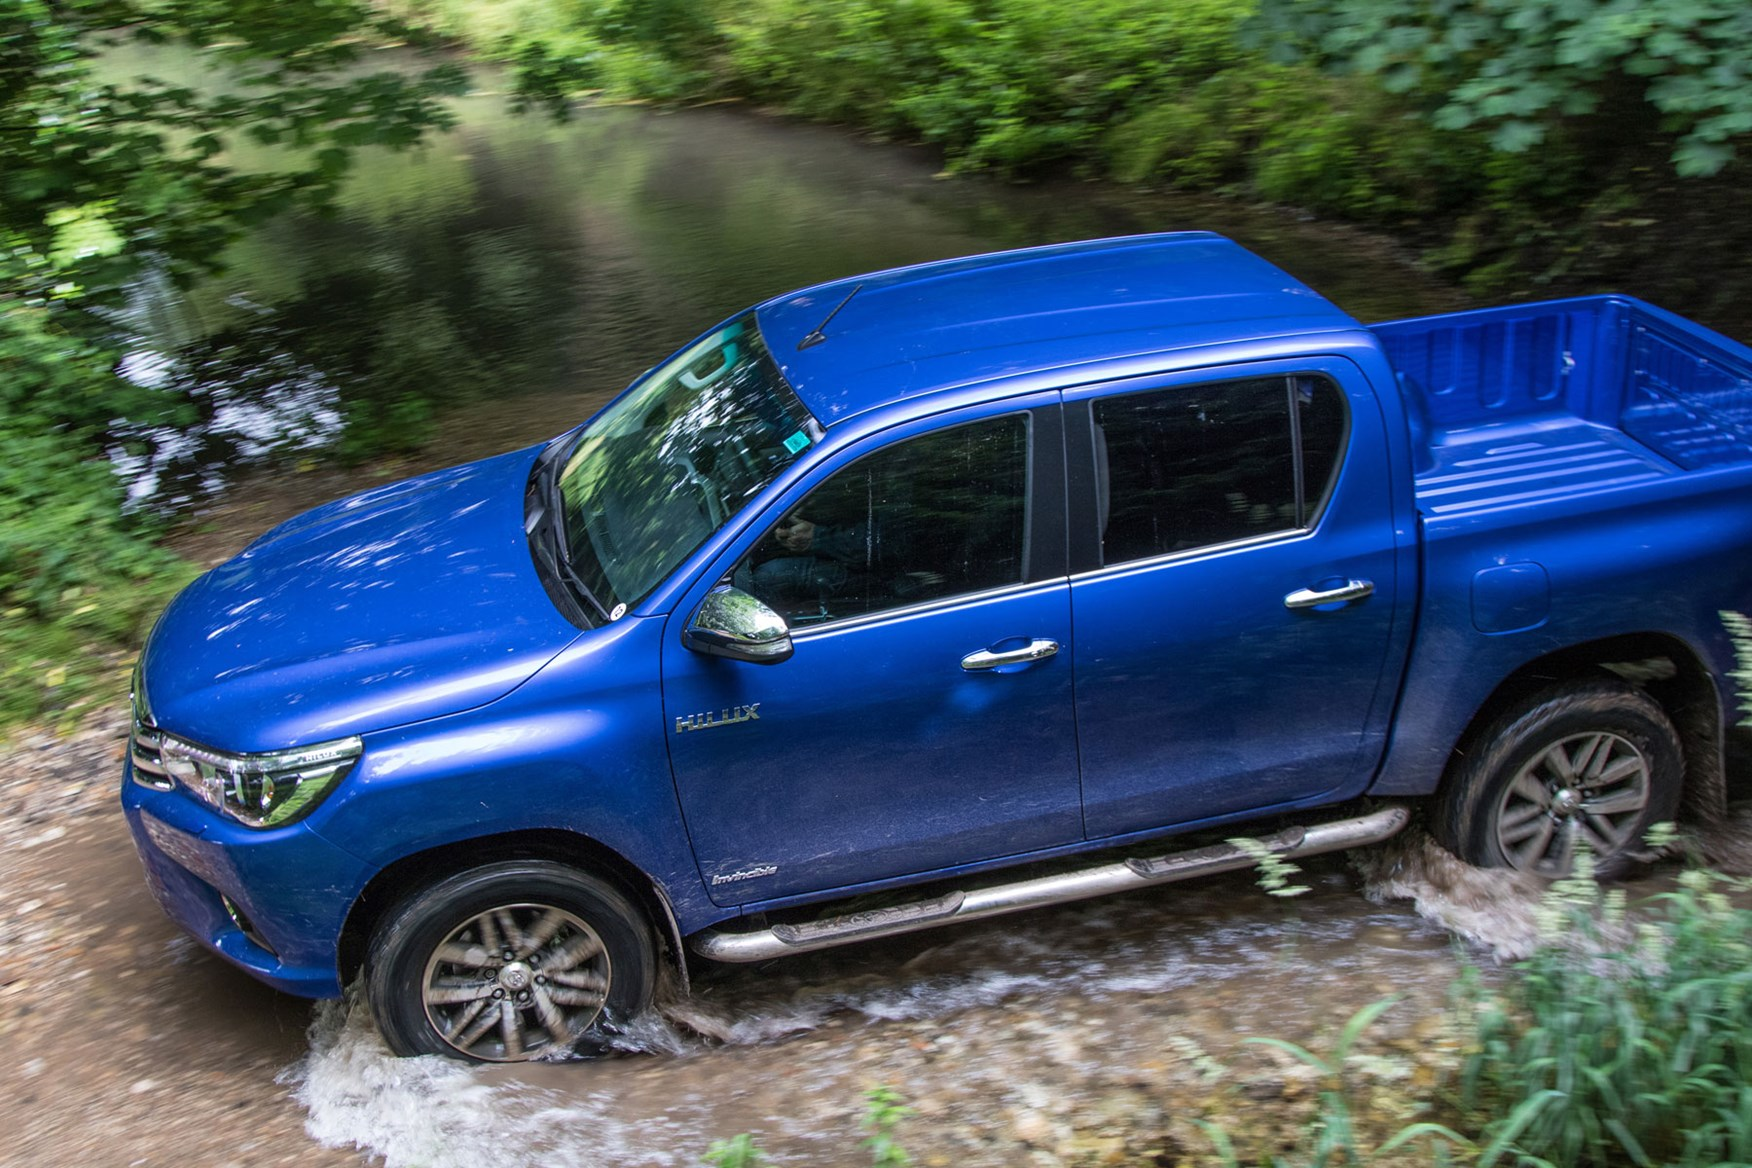 Toyota Hilux review - driving through river, blue, top view